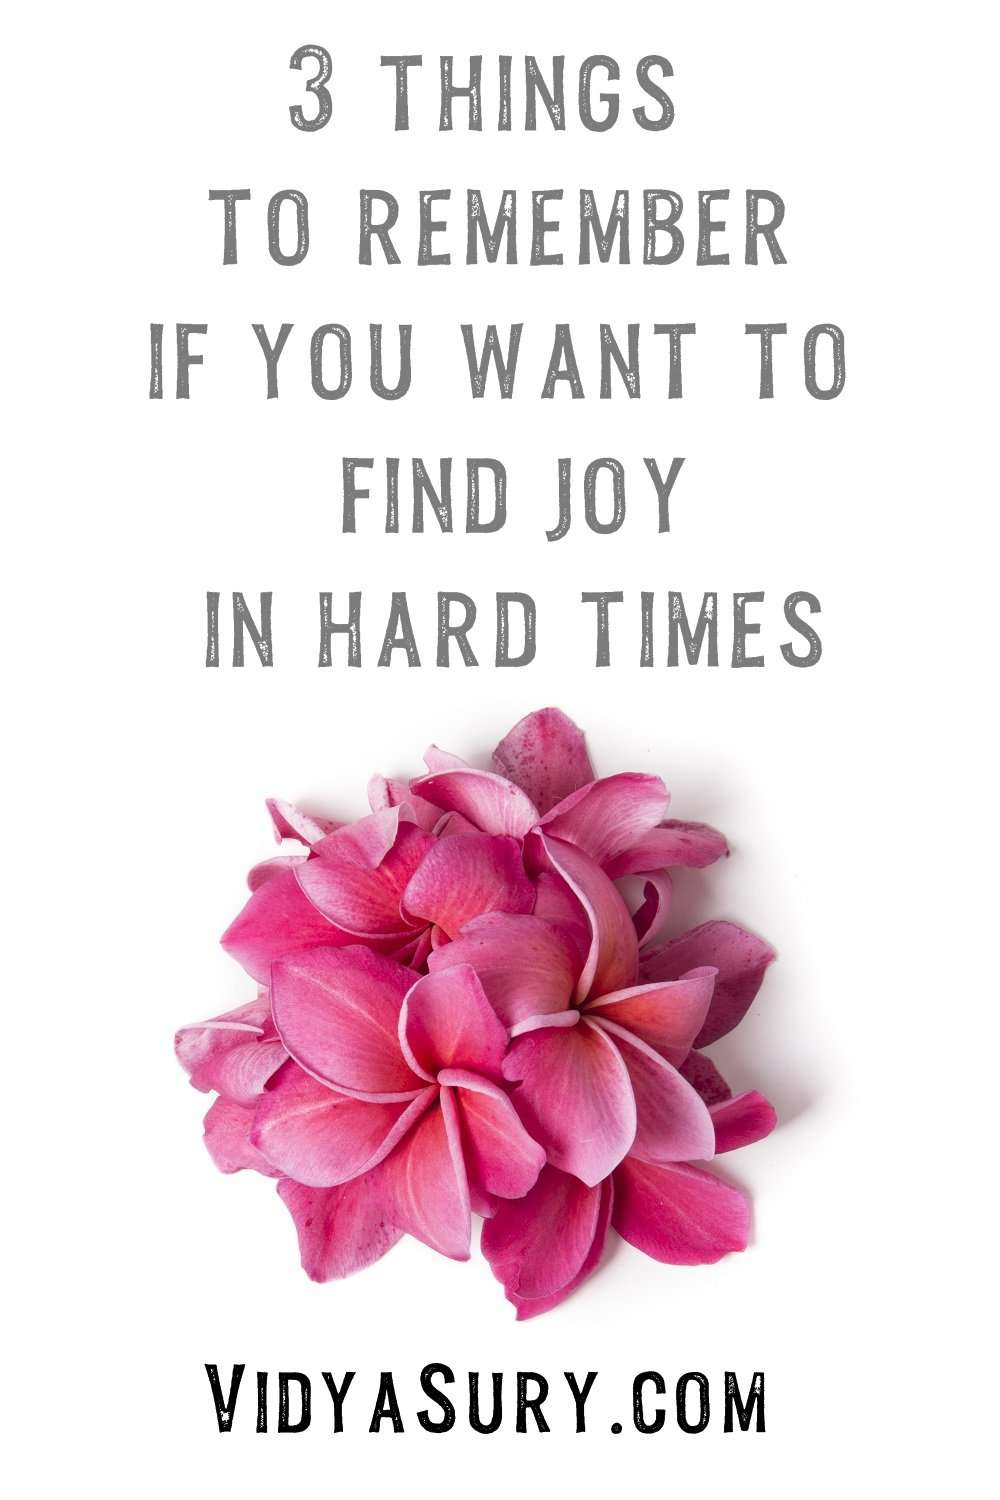 3 things to remember if you want to find joy in hard times